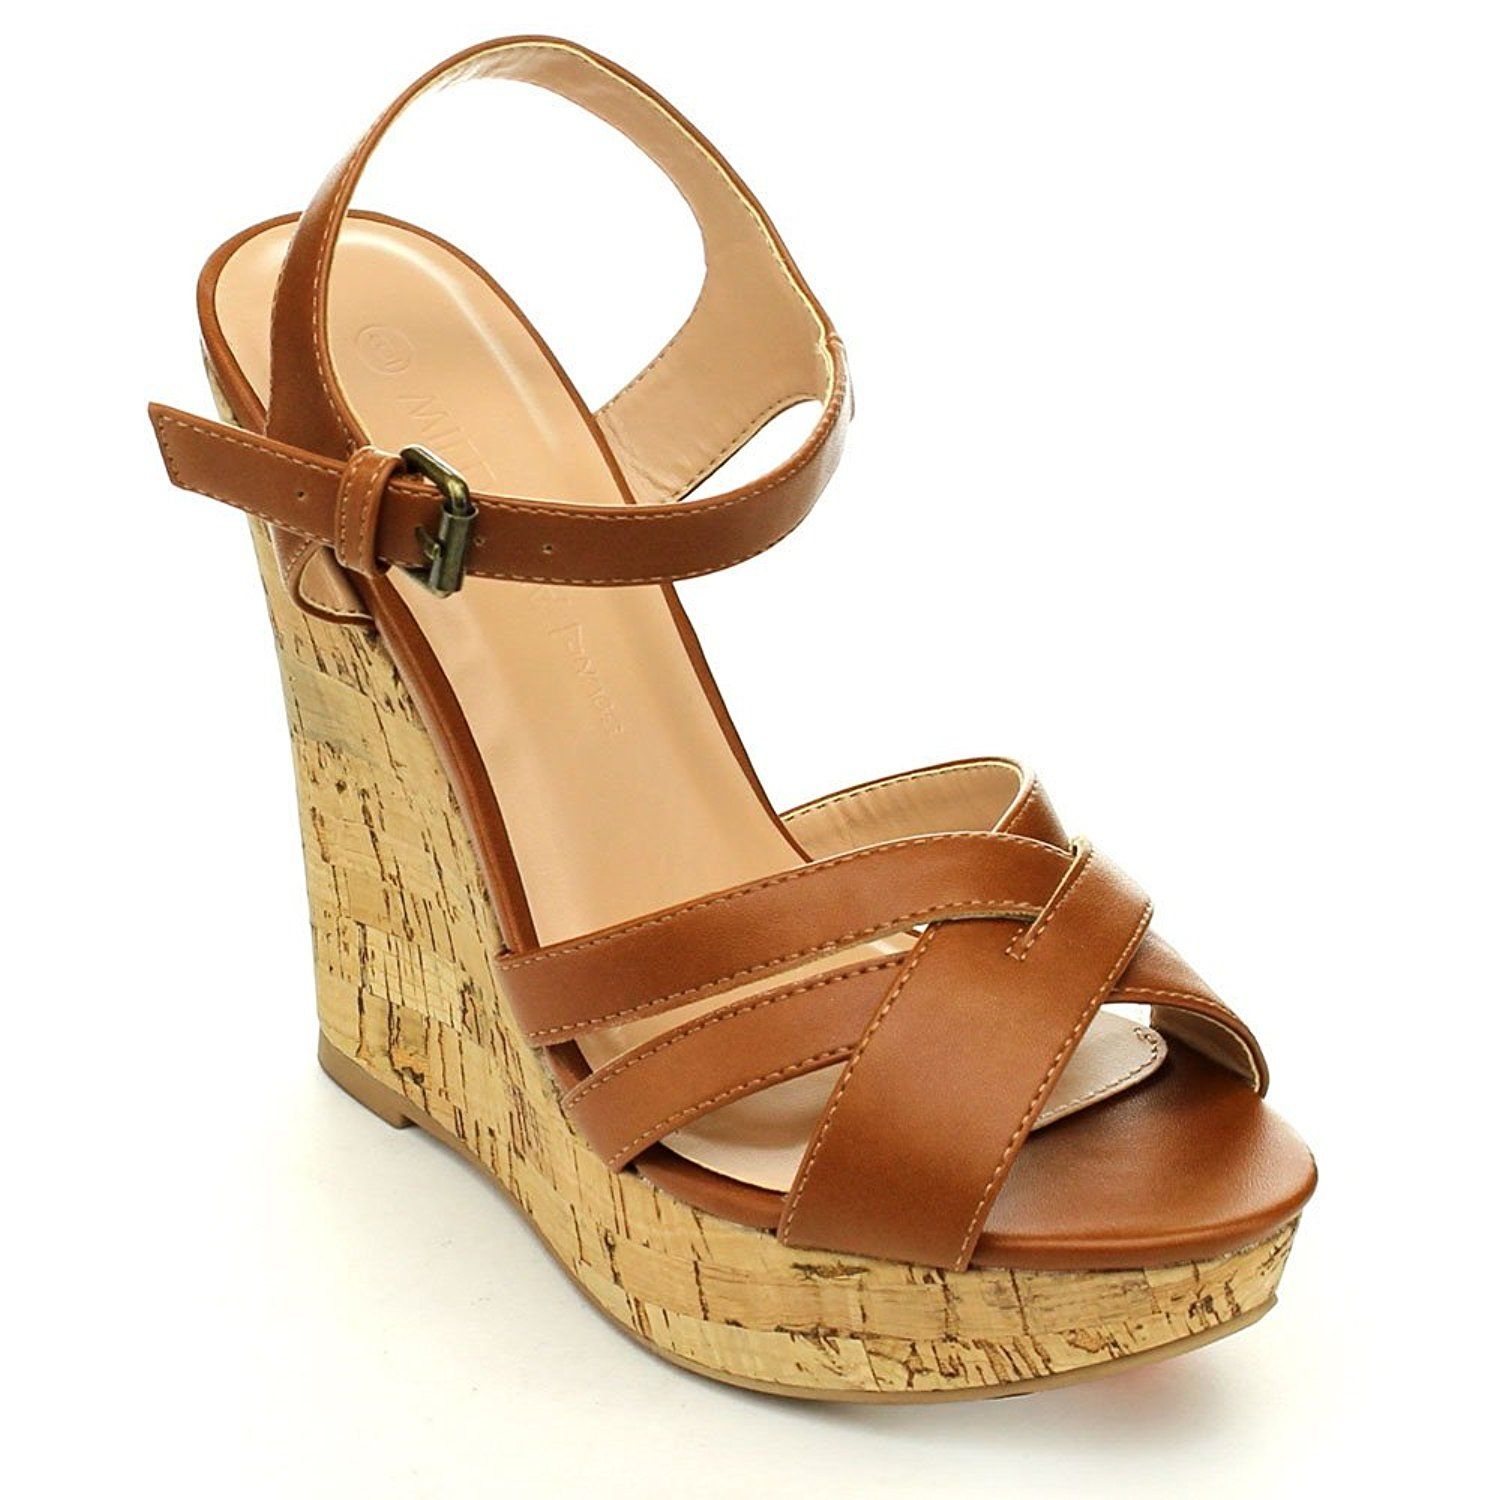 9c3d28f4c80 WILD DIVA MADISON-131 Women Comfort Platform Ankle Strap Wedge Sandals --  Be sure to check out this awesome product.